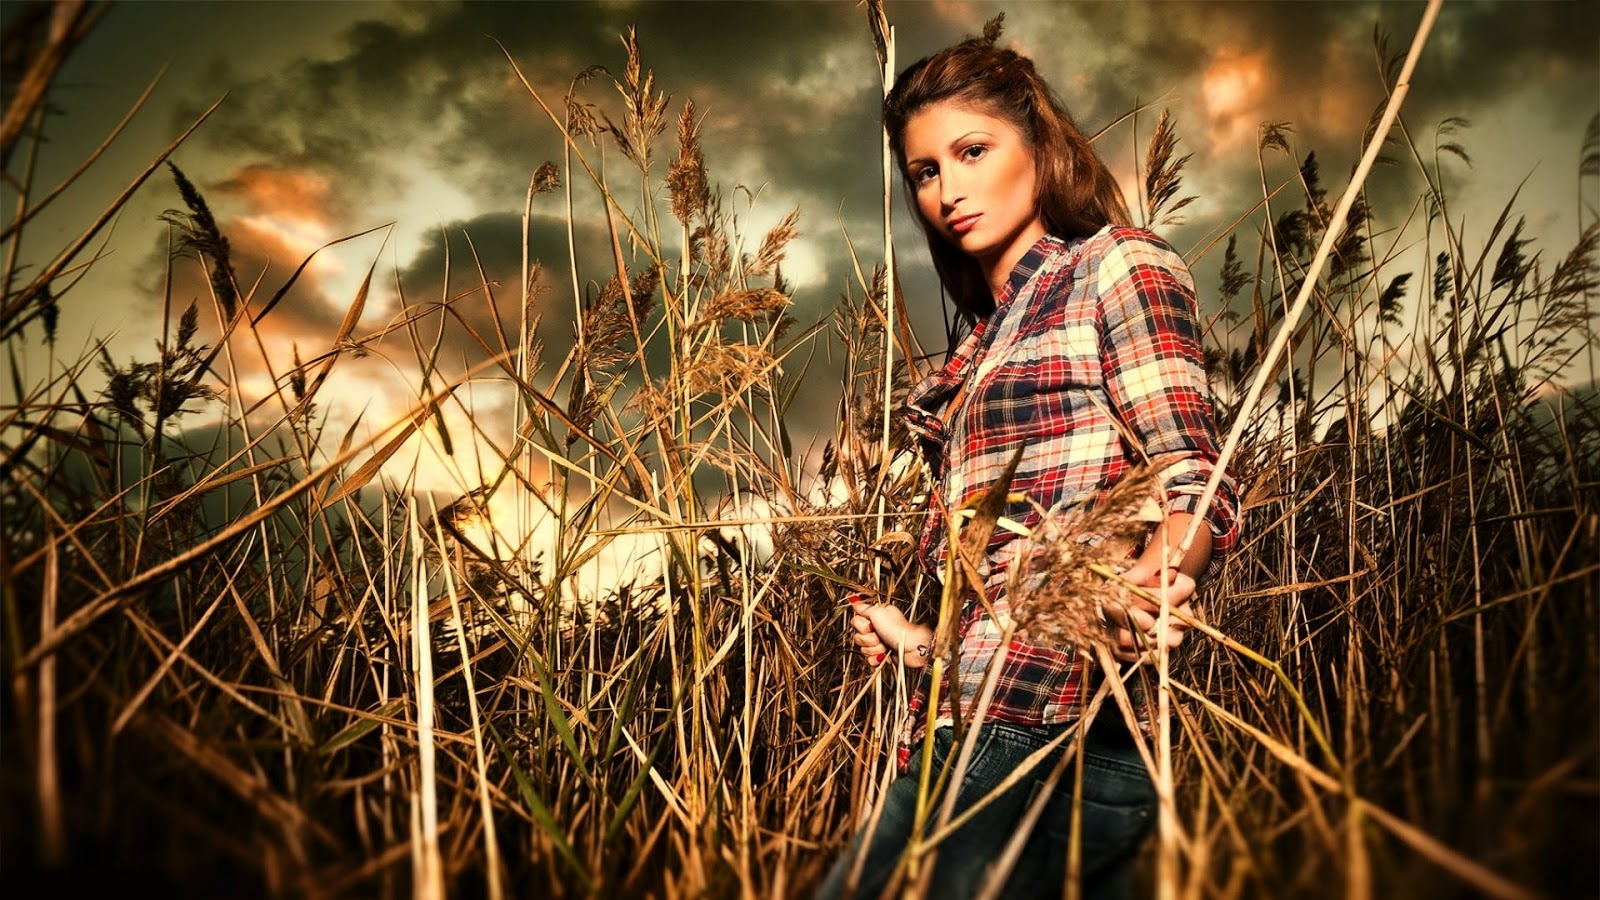 Brunette Model Girl in Wheat Field